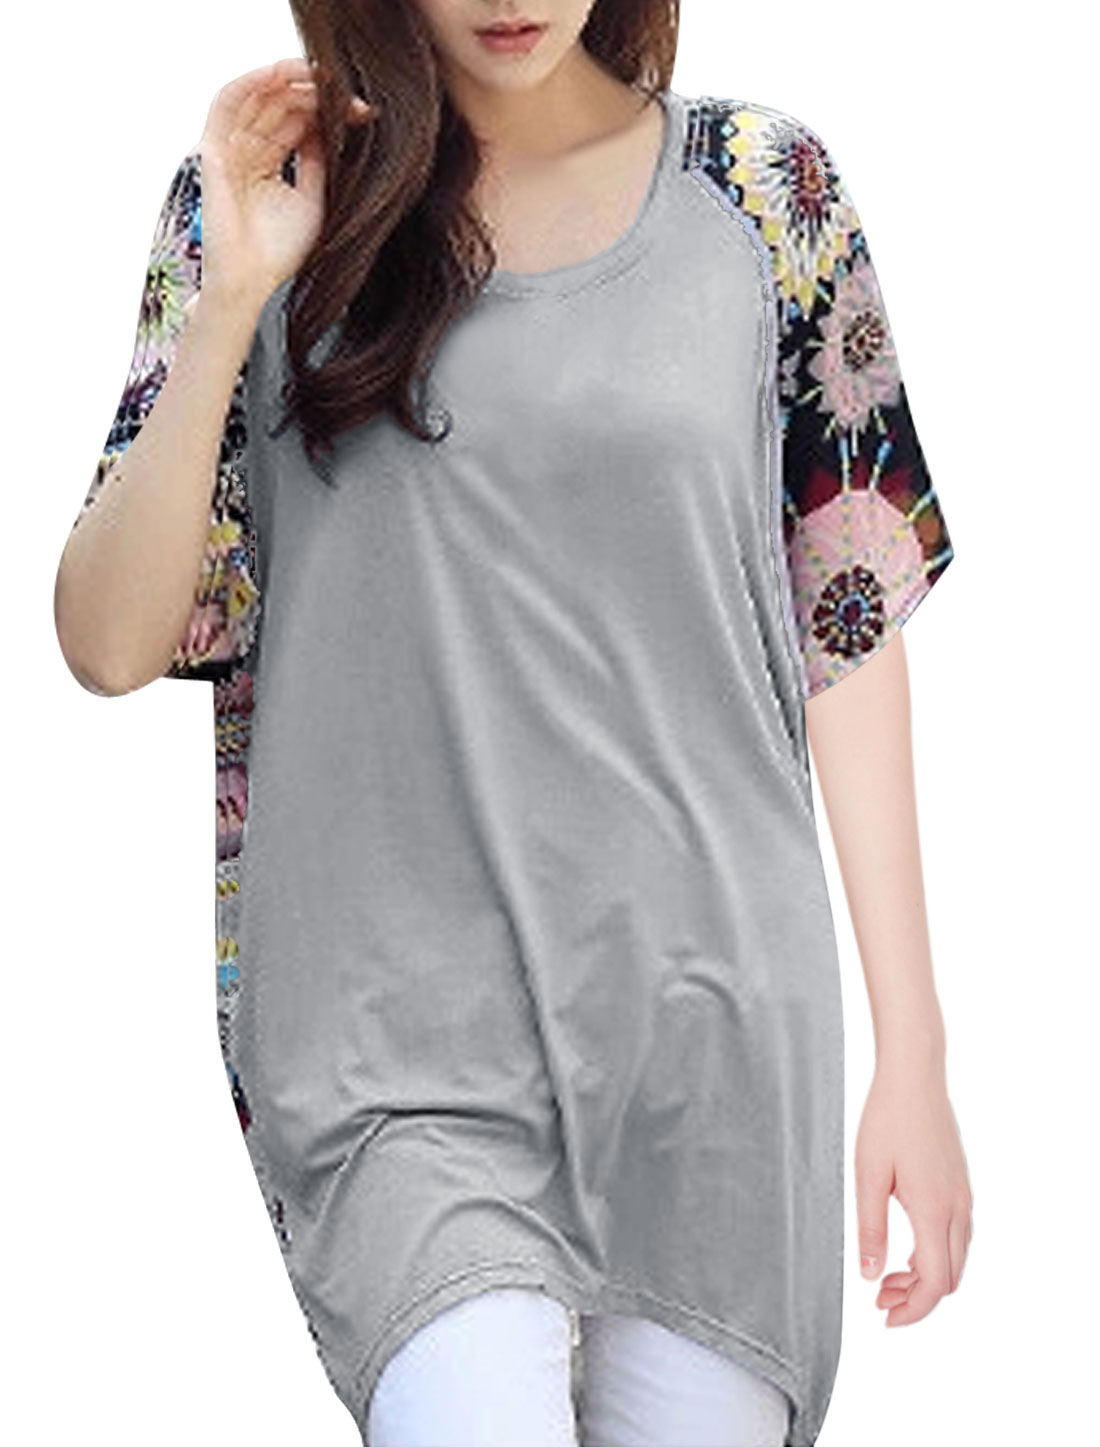 Lady Geometric Prints Irregular Hem Chiffon Spliced Tunic T-Shirt Light Gray XS